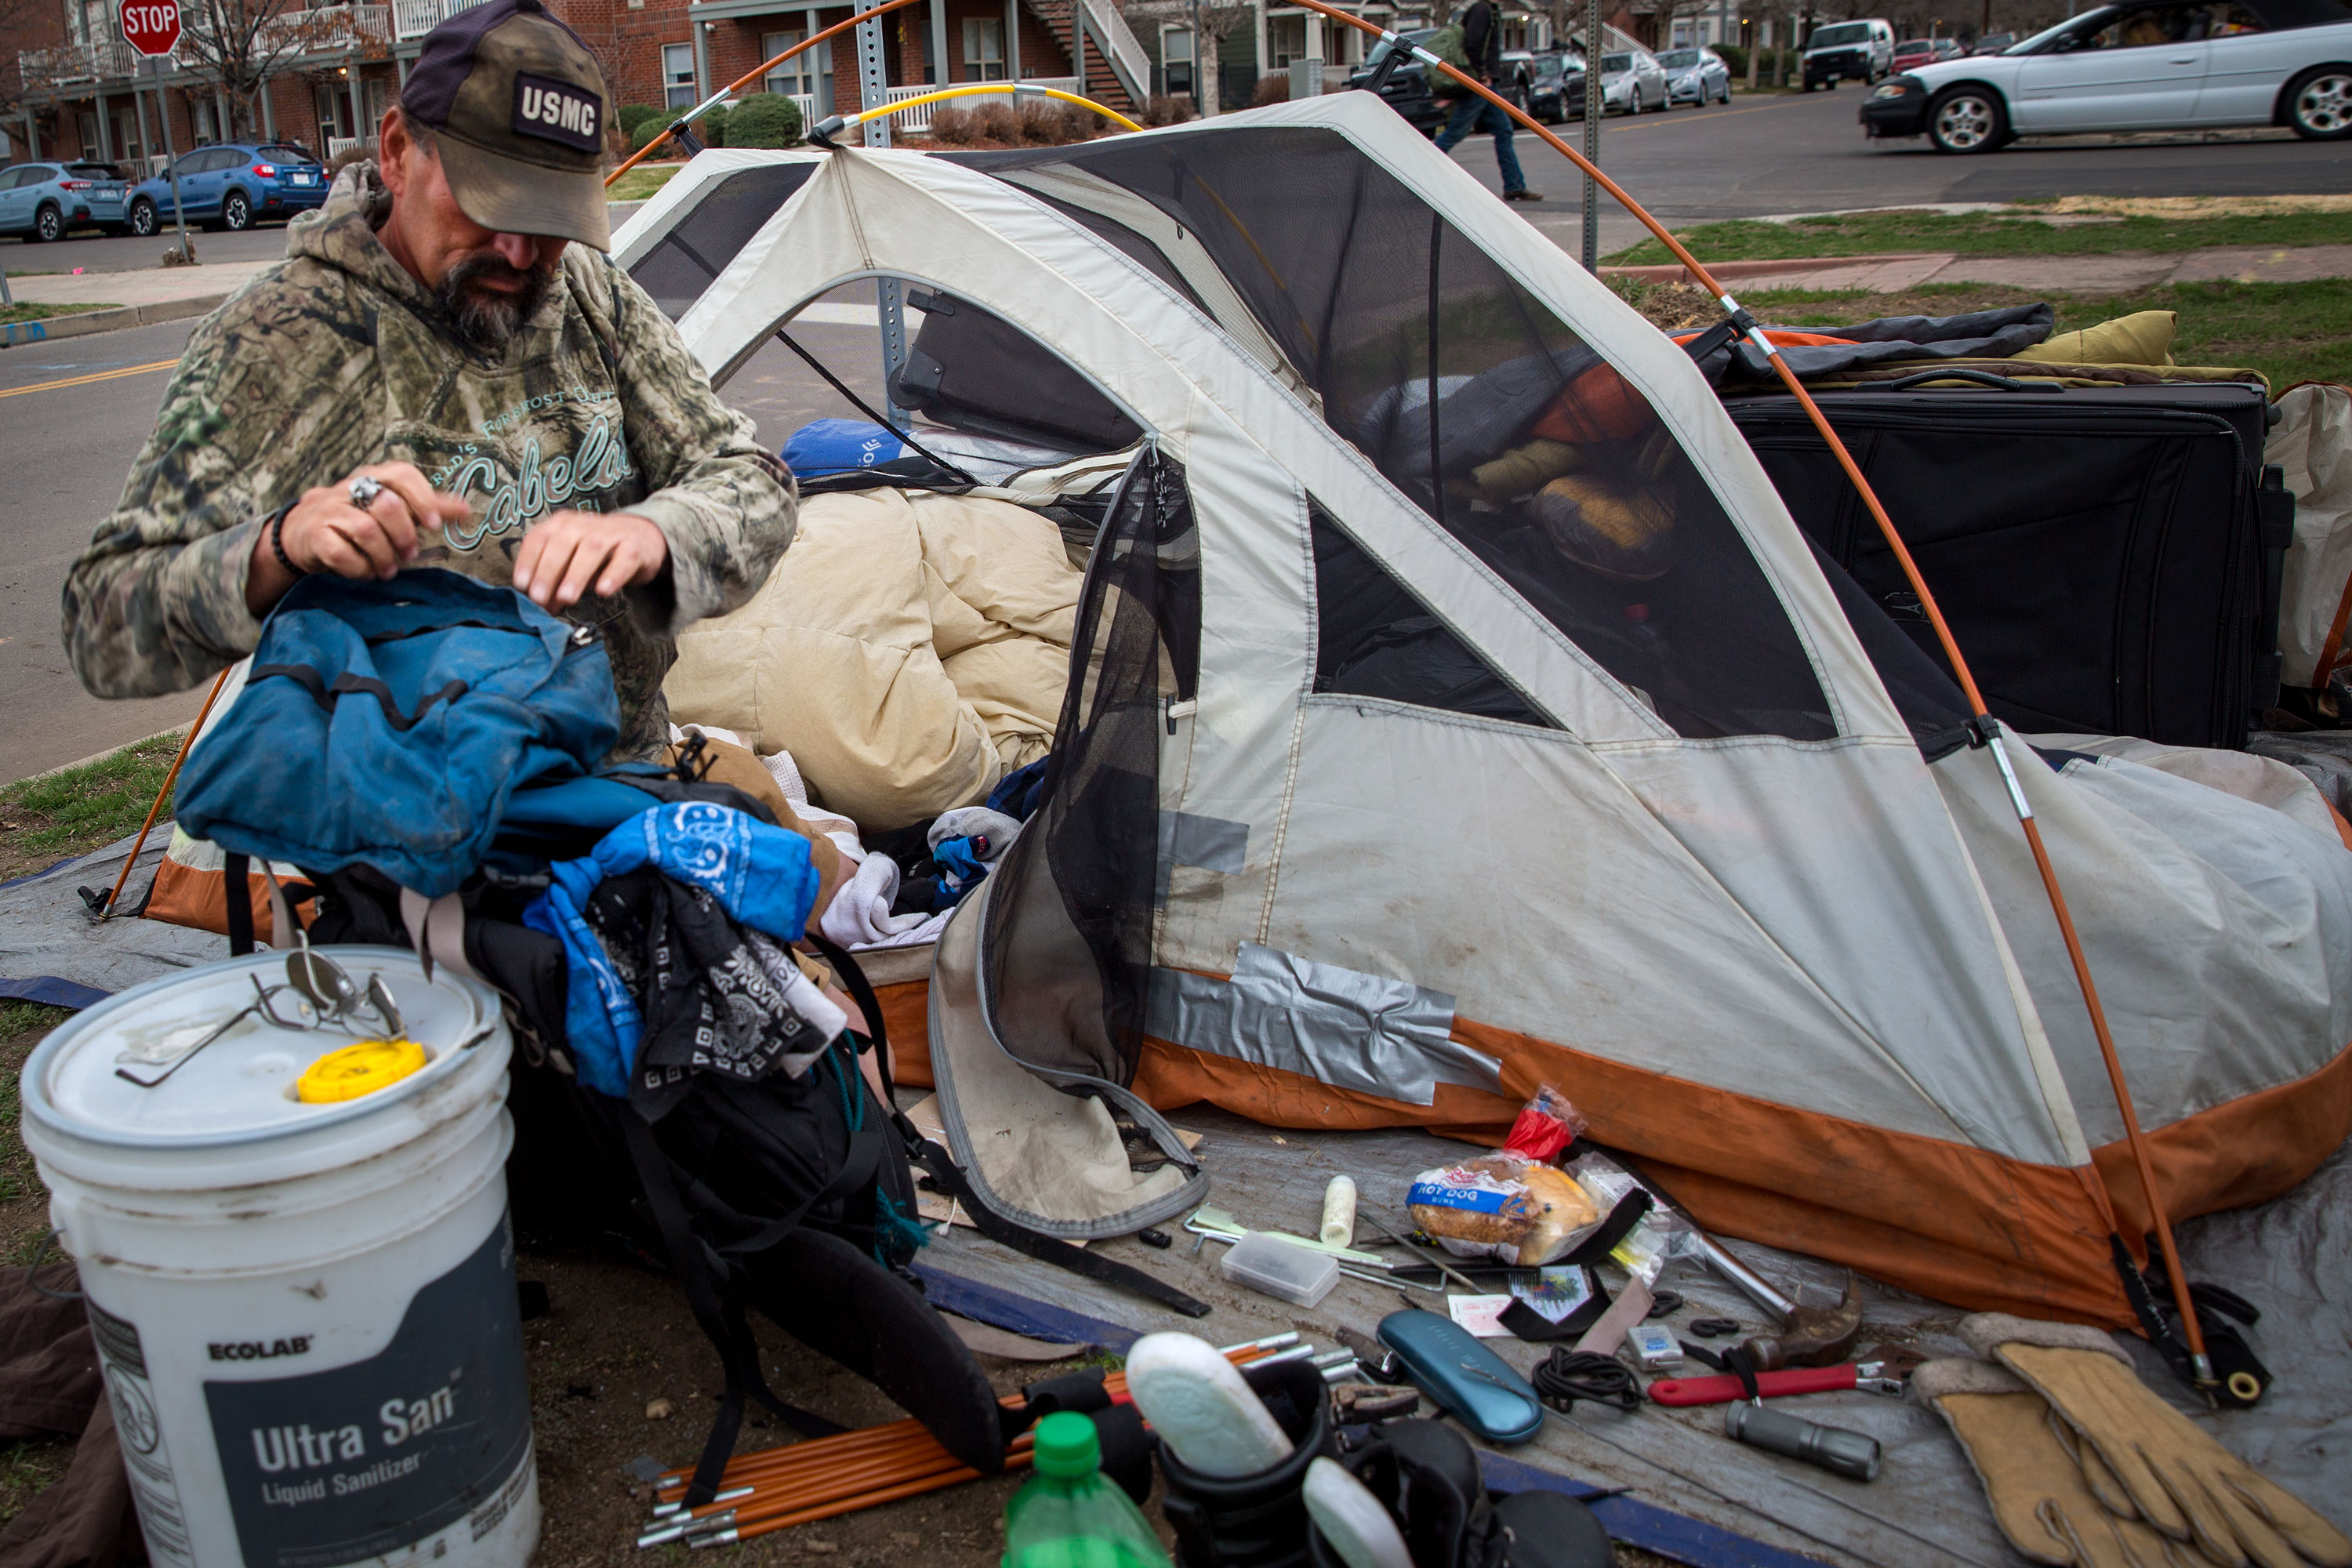 "<p>After putting his tent up for the evening on Denver's Arapahoe Street near 27th Avenue, ""Wolf"" starts picking up and packing away his belongings  on March 27, 2019. The camp where he lives asks everyone there to keep their sites tidy, and they watch out for each others belongings during the day. </p>"